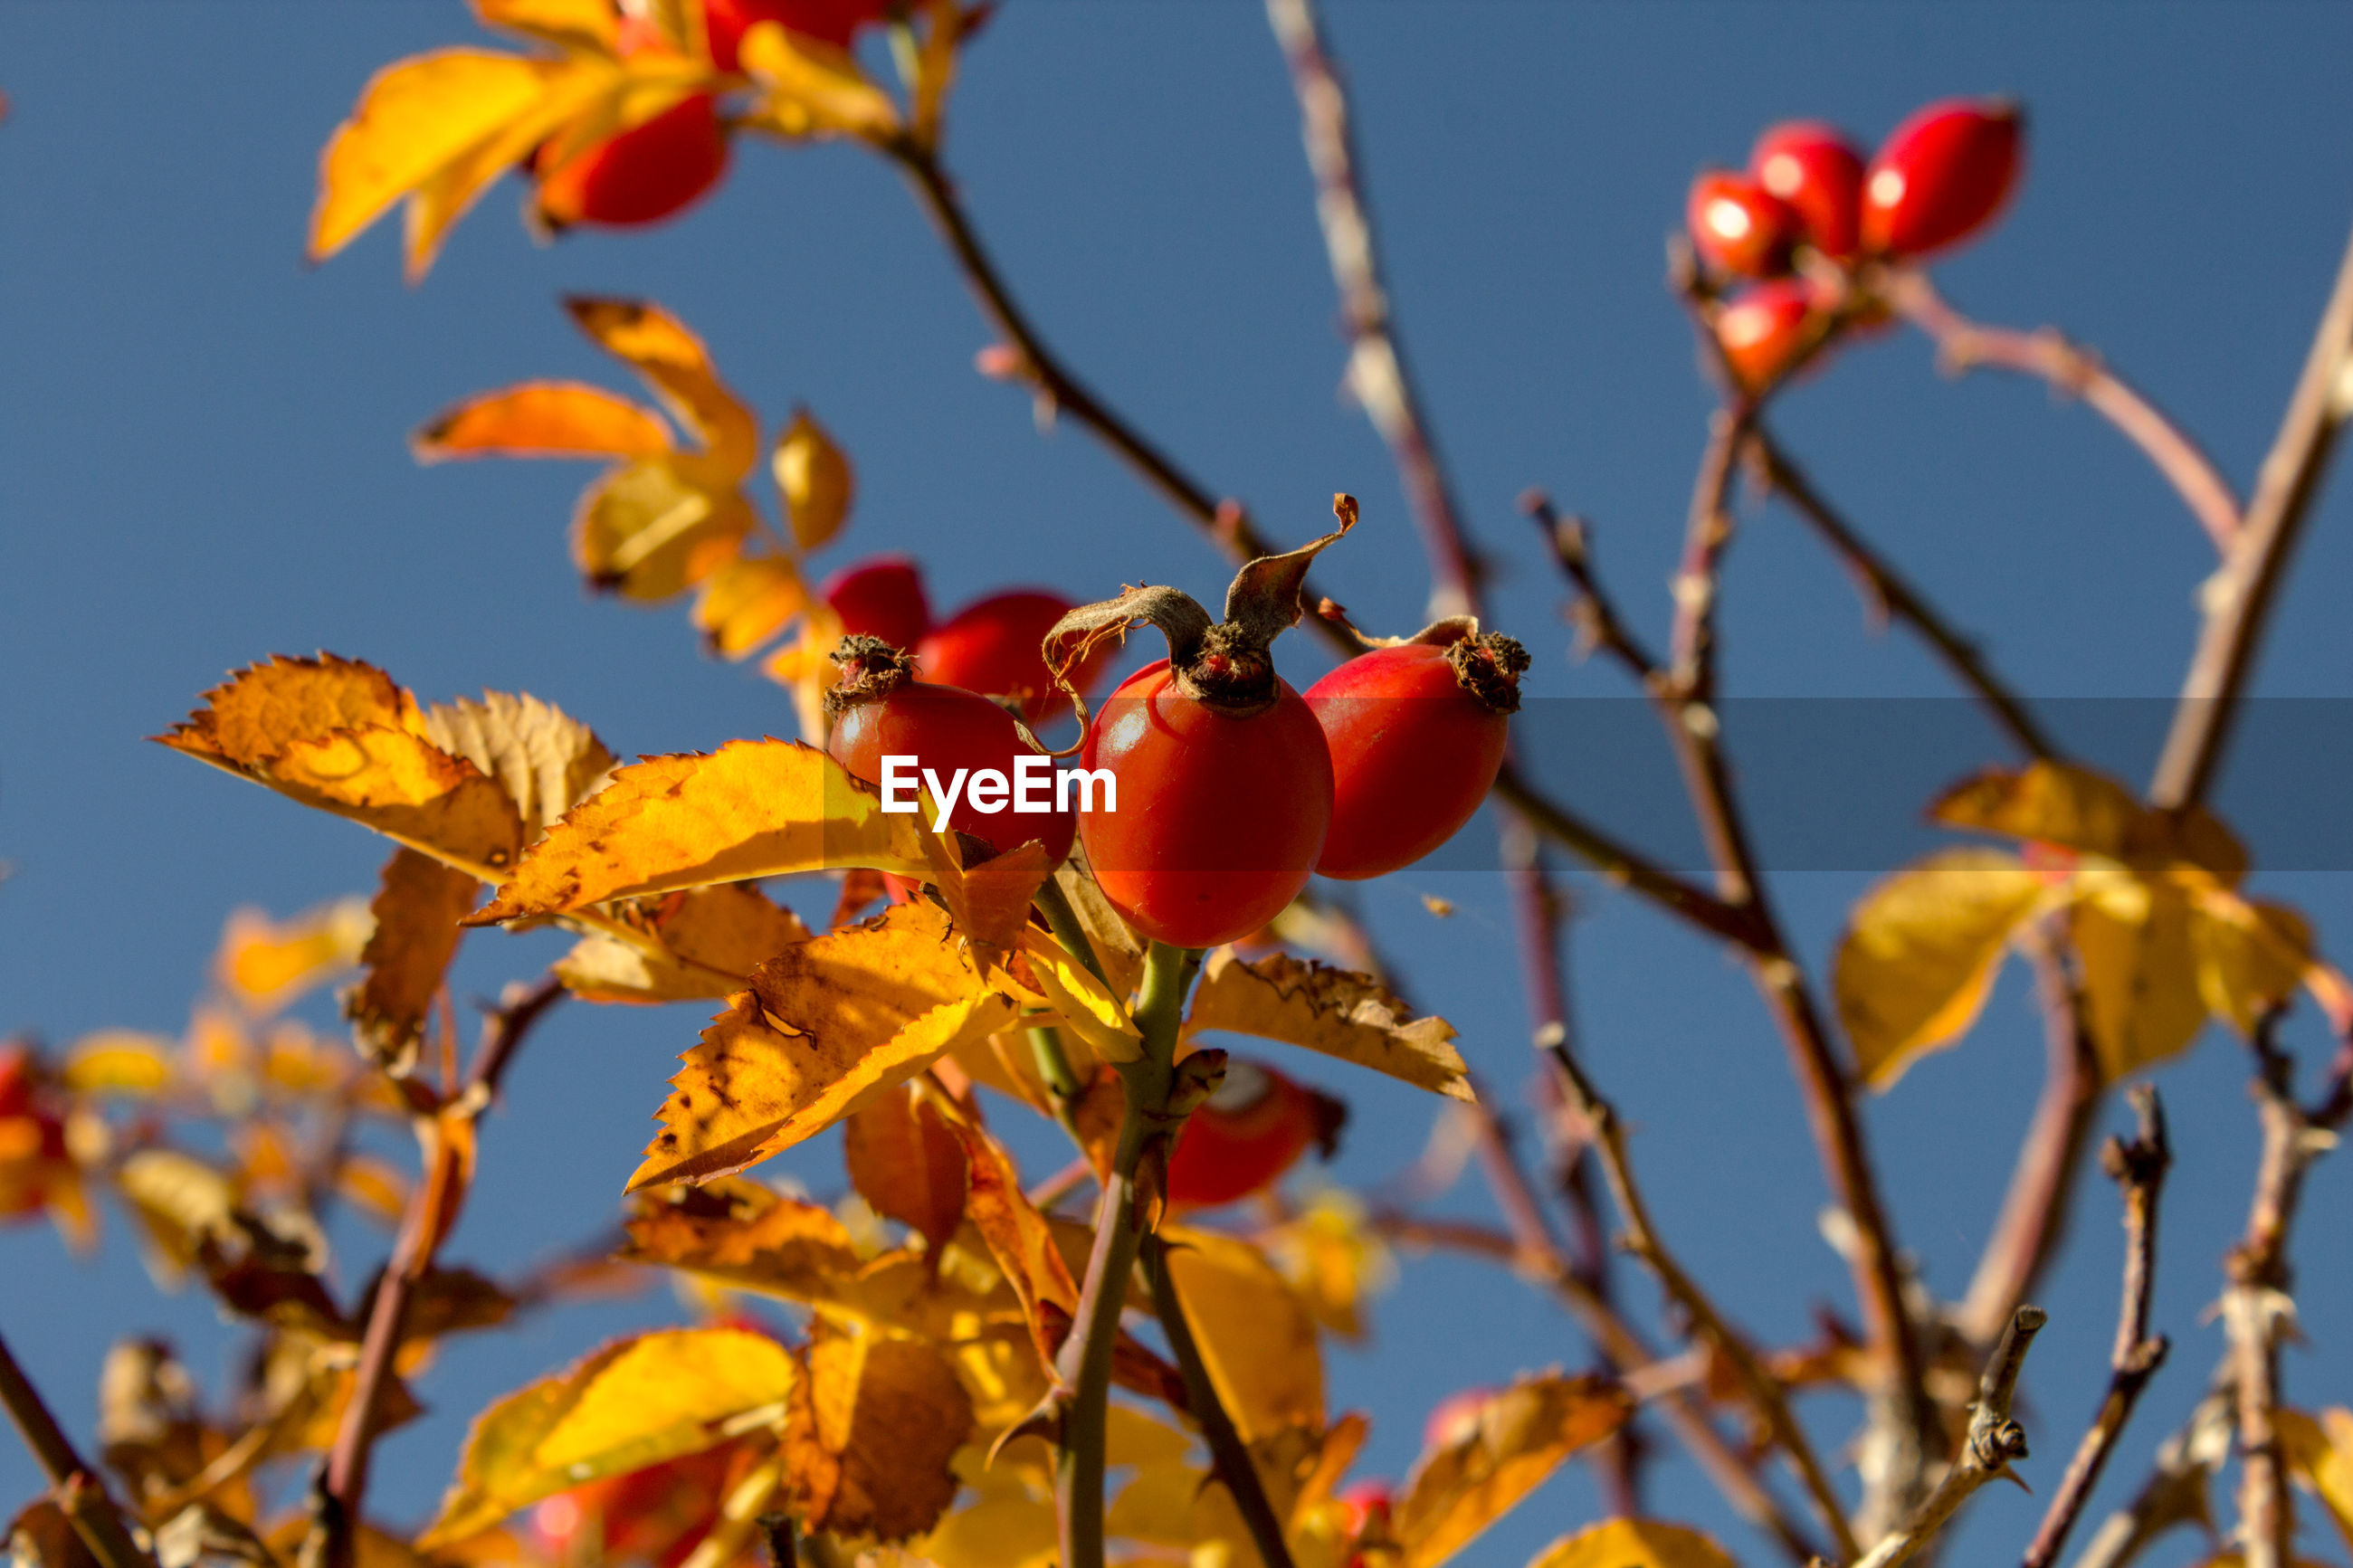 Close-up of berries growing on tree against sky